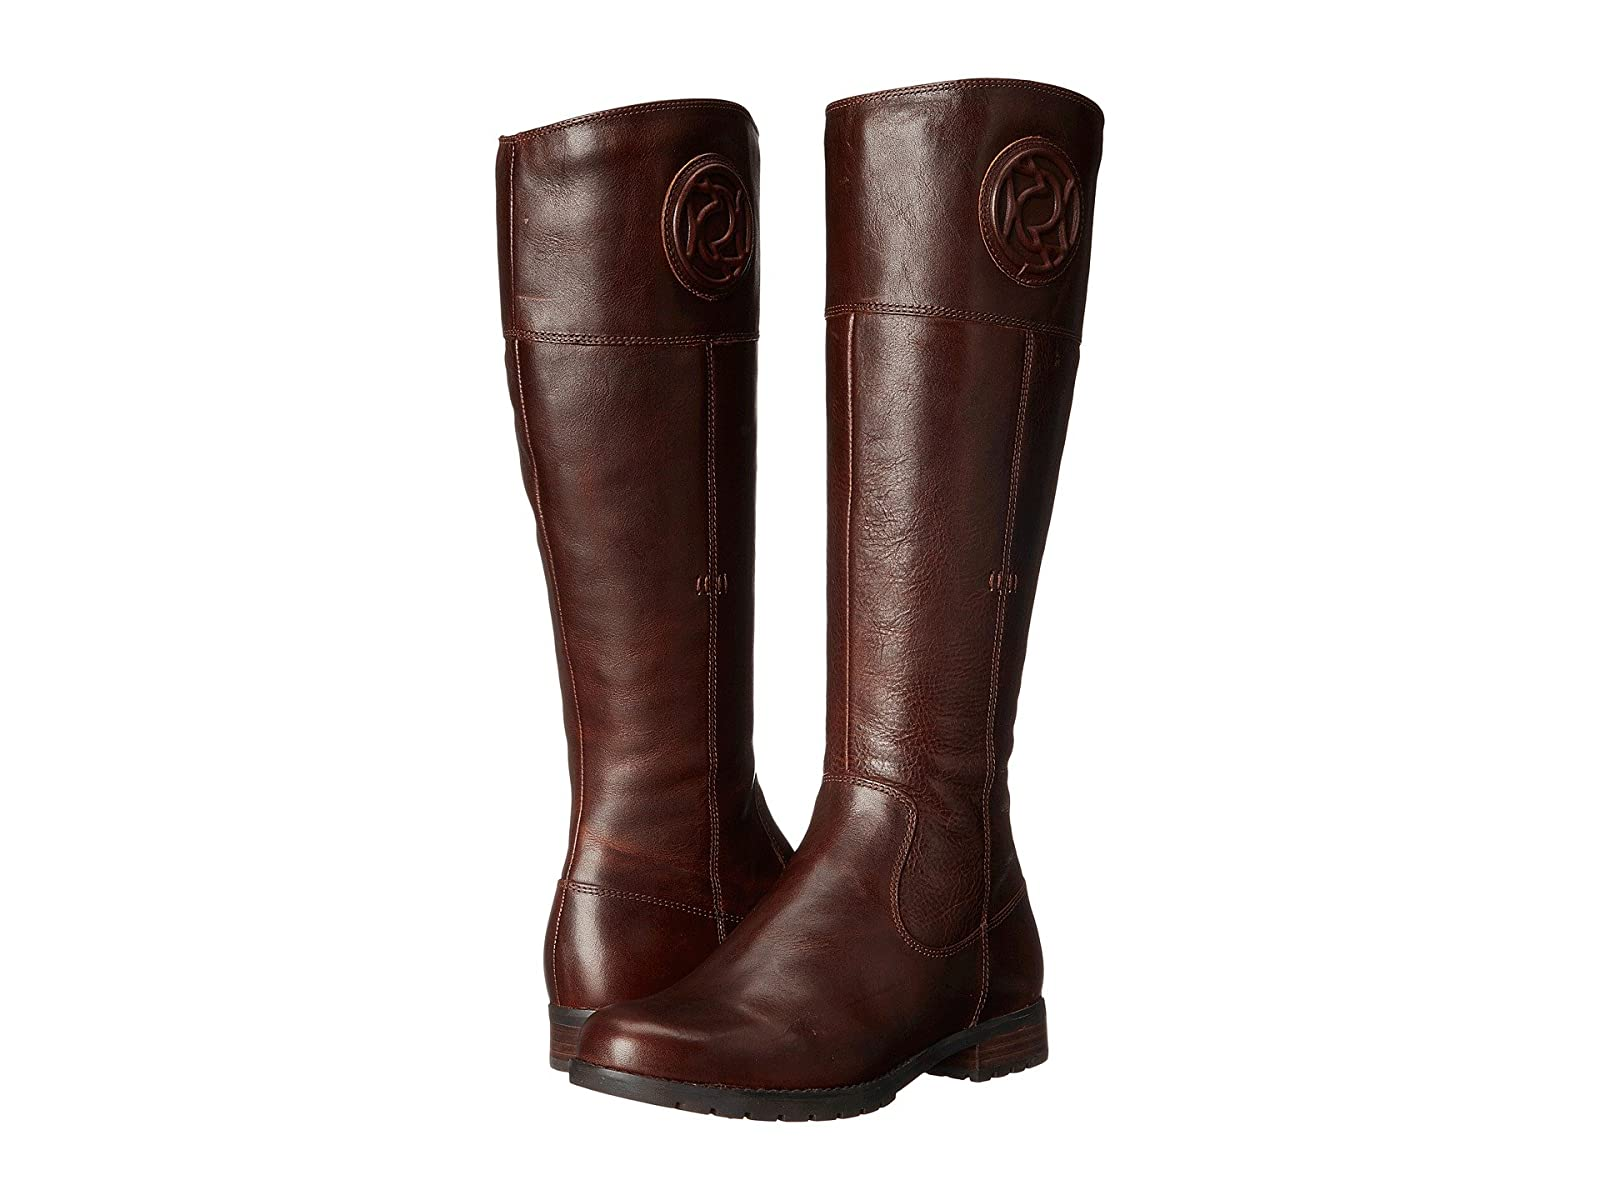 Rockport Tristina Rosette Tall  BootCheap and distinctive eye-catching shoes